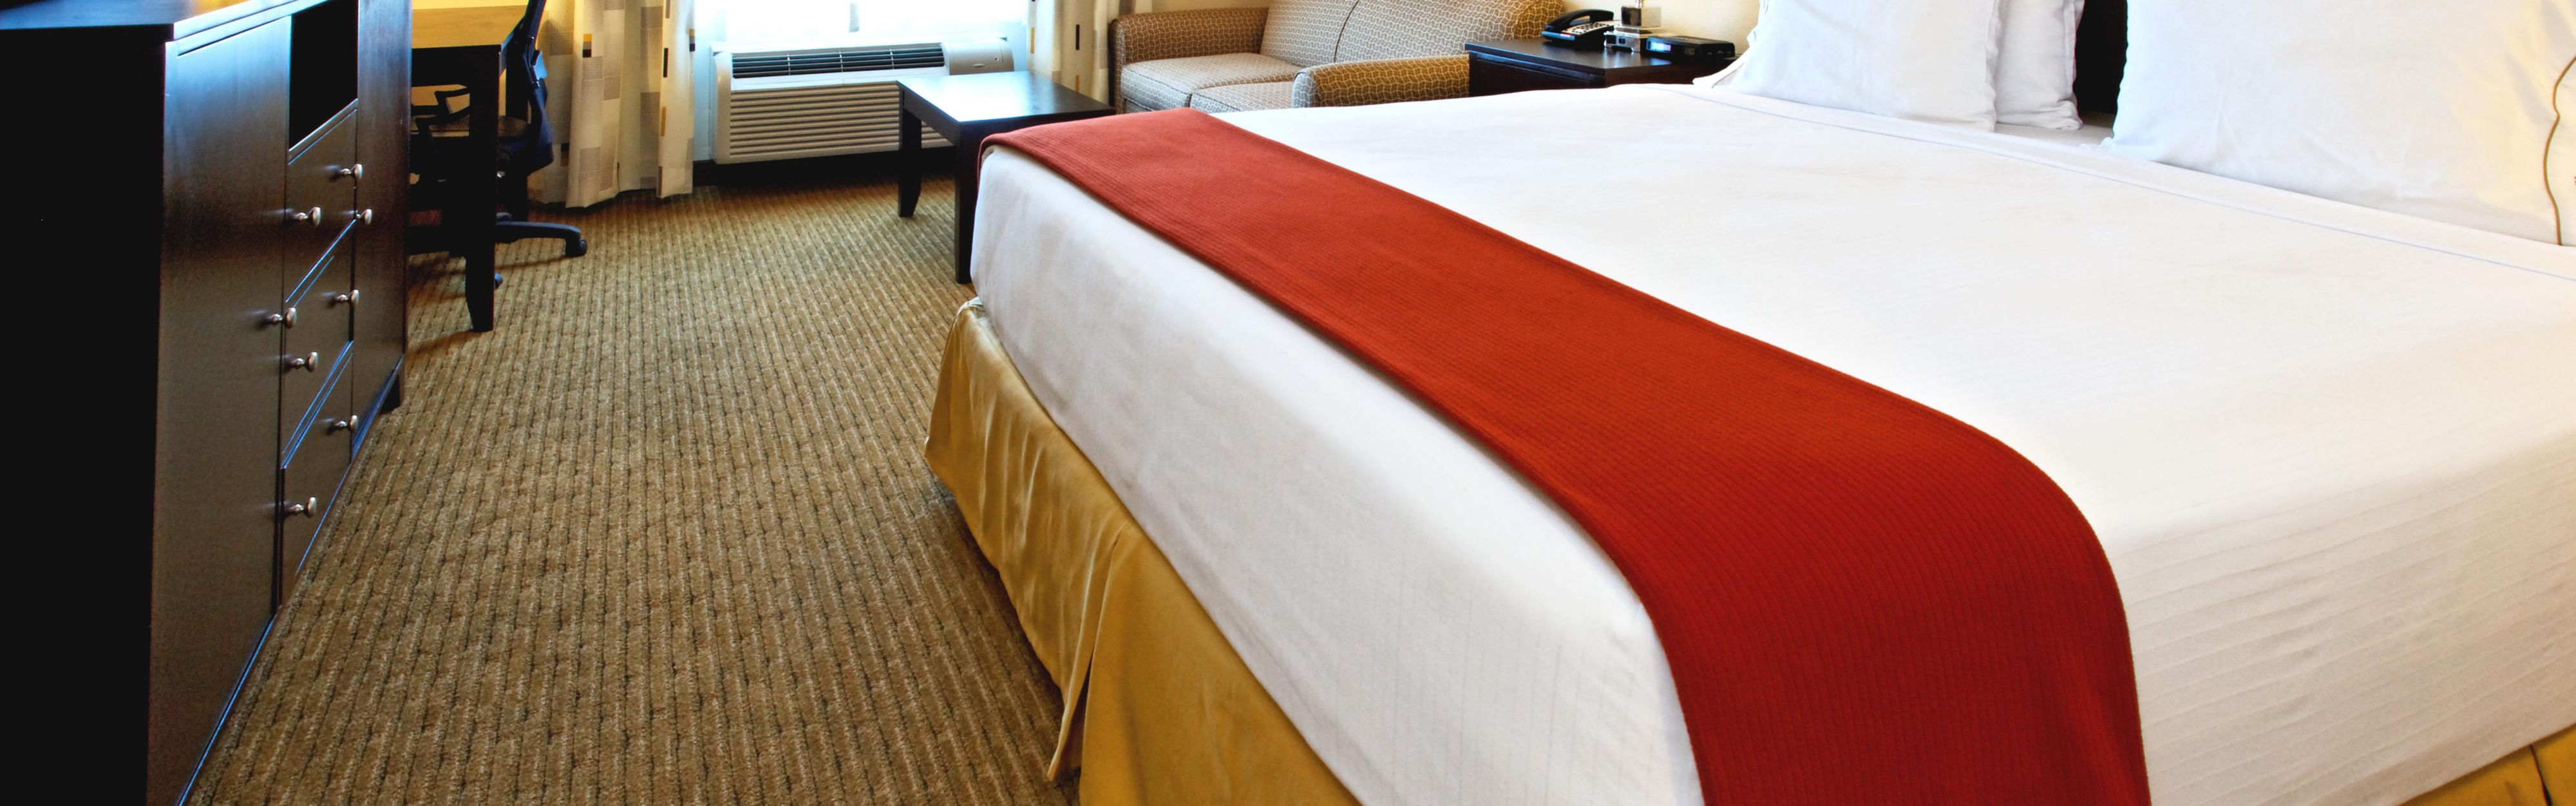 Holiday Inn Express & Suites Cleburne image 1